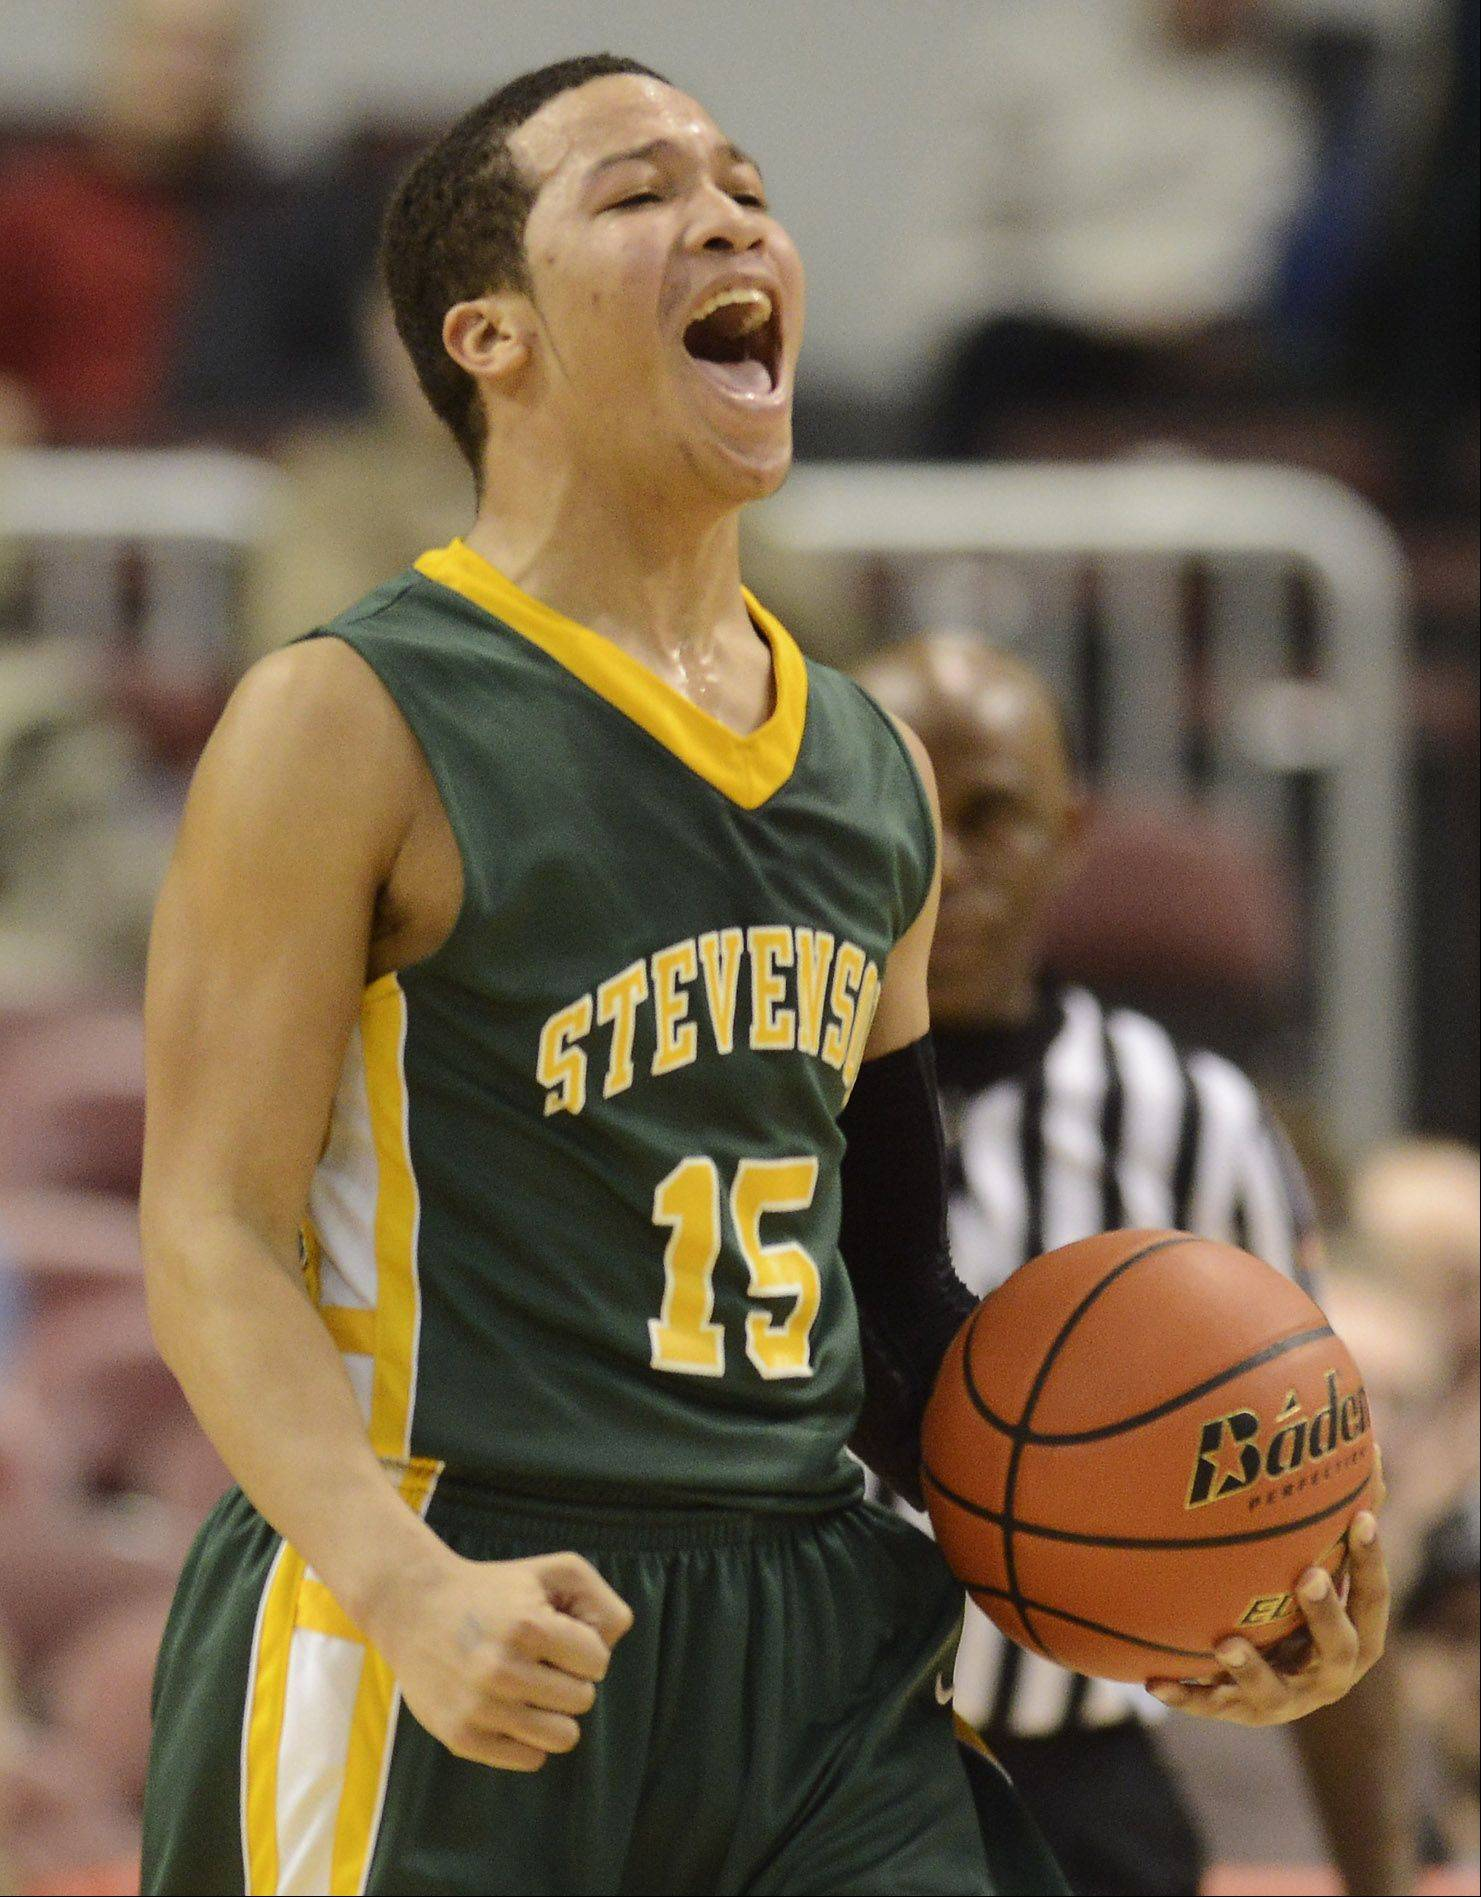 Stevenson's Jalen Brunson lets out a shout as his team closes in on victory.